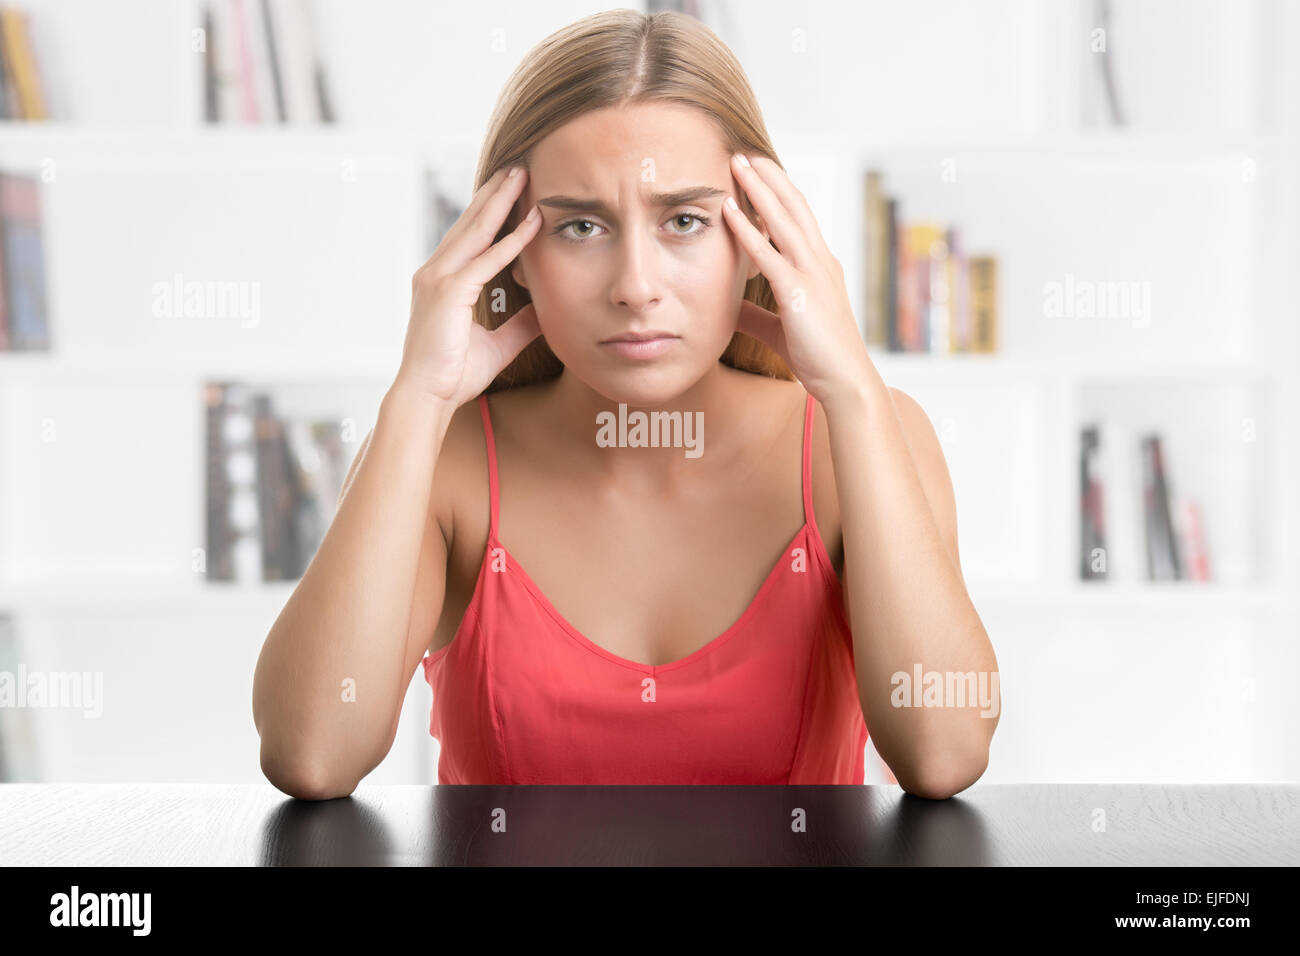 Woman suffering from an headache, holding her hand to the head, in a library - Stock Image